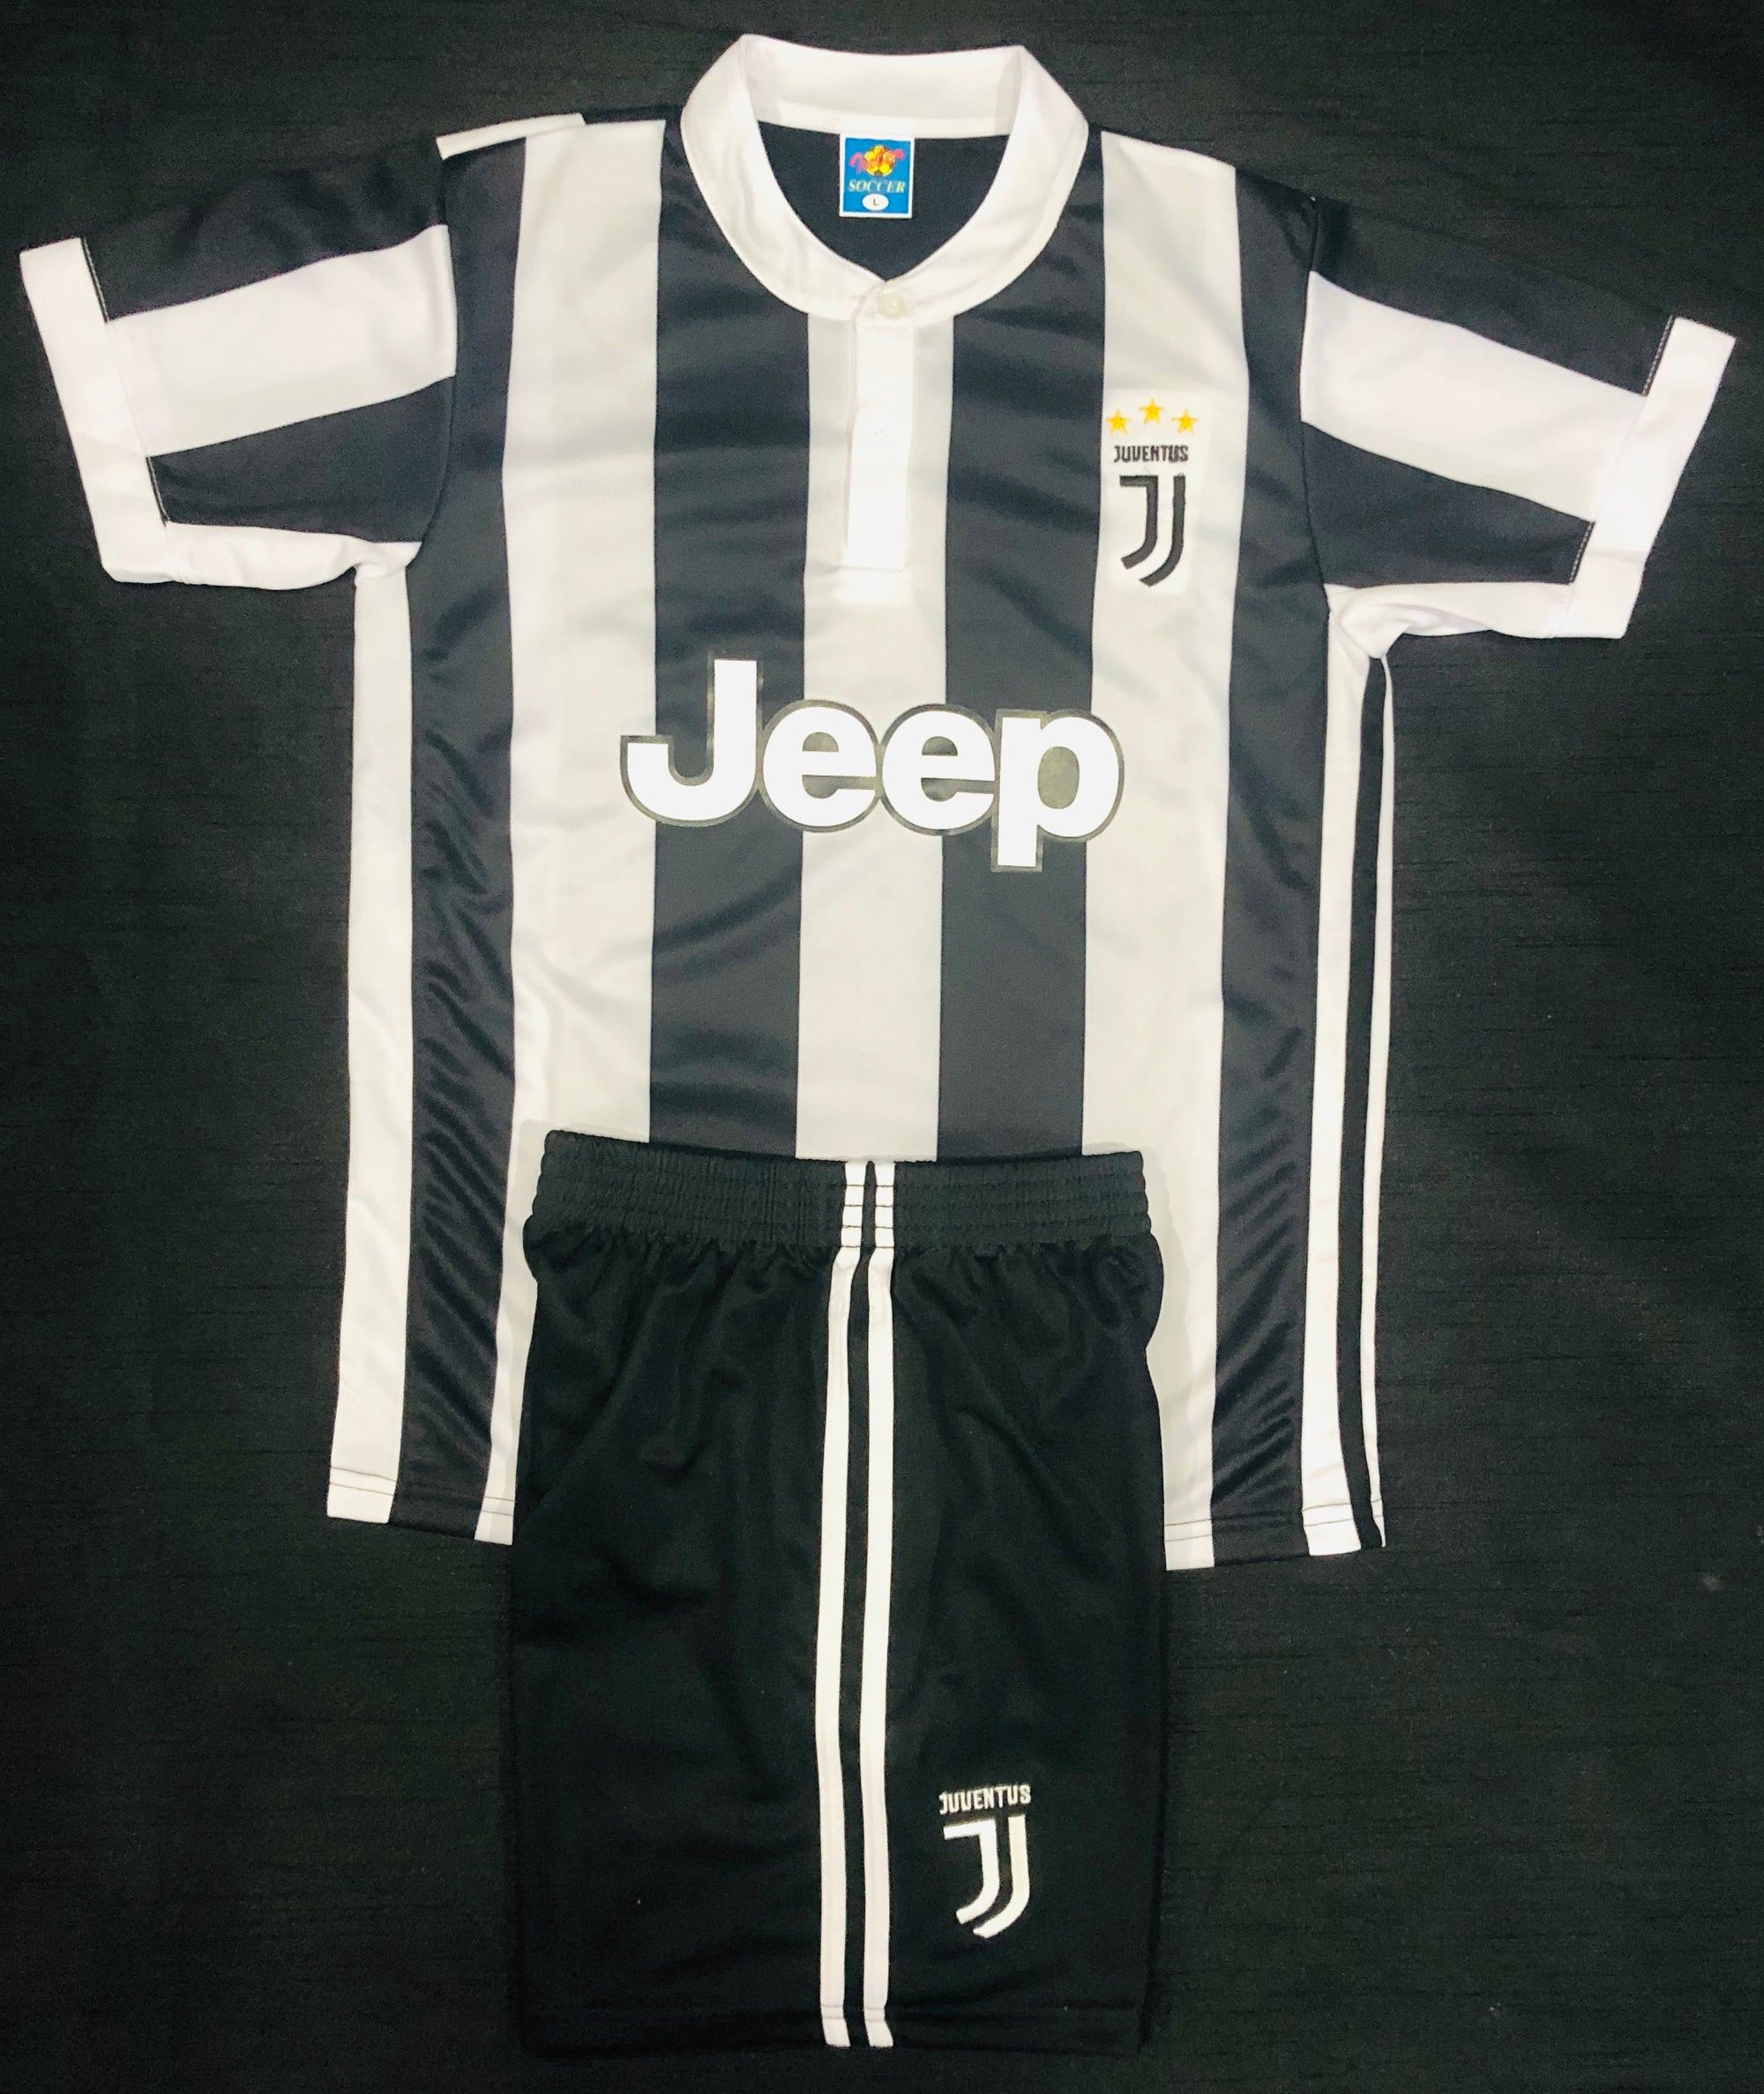 JUVENTUS HOME 2017/18 KIDS 2-PIECE SOCCER SET